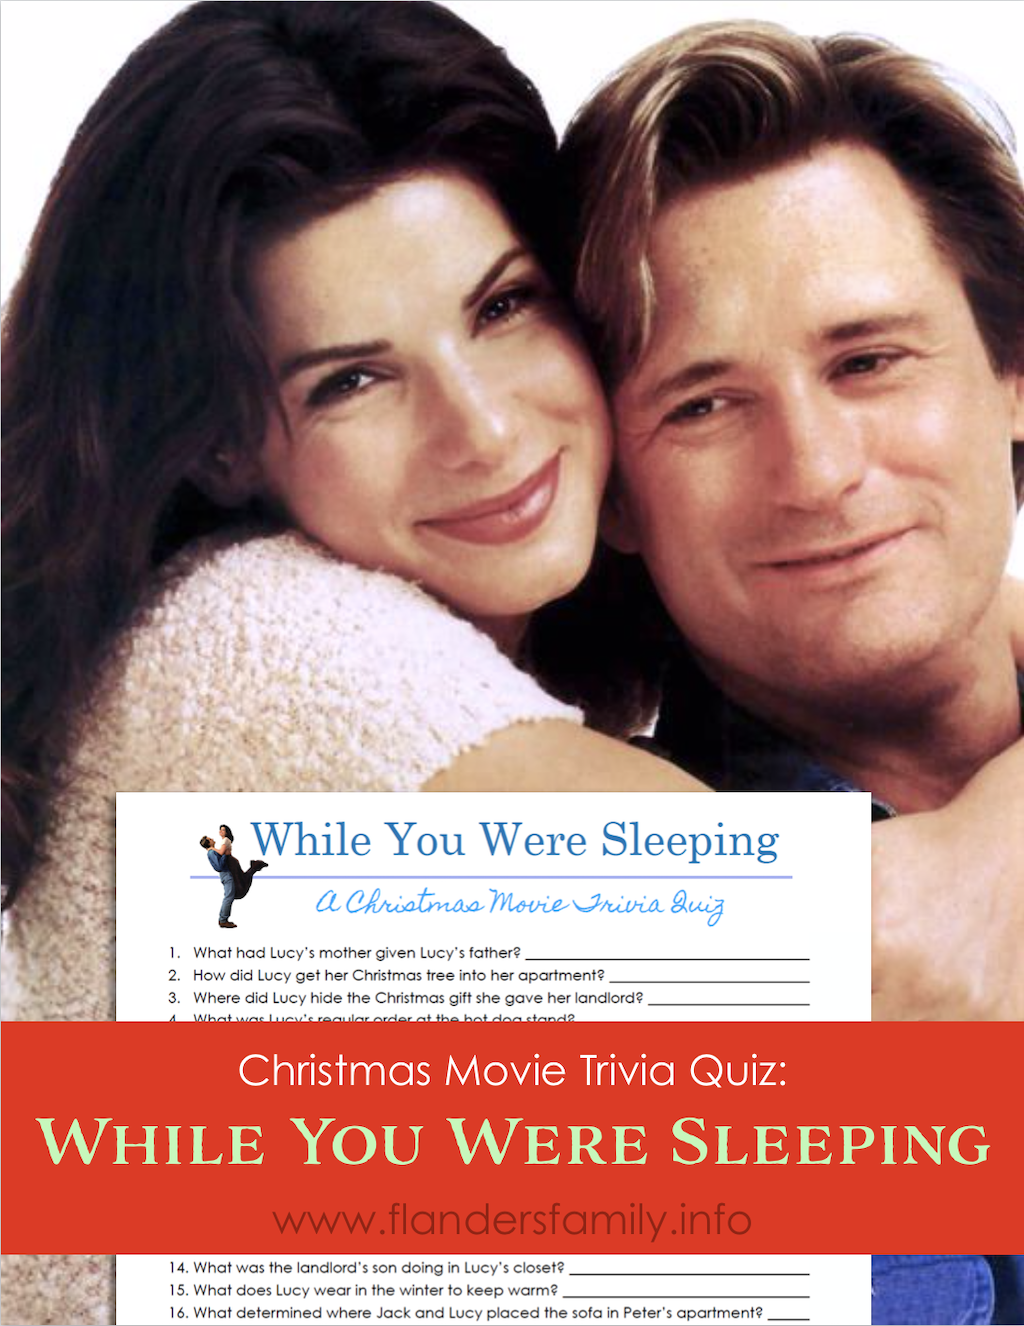 While Your Were Sleeping Quiz